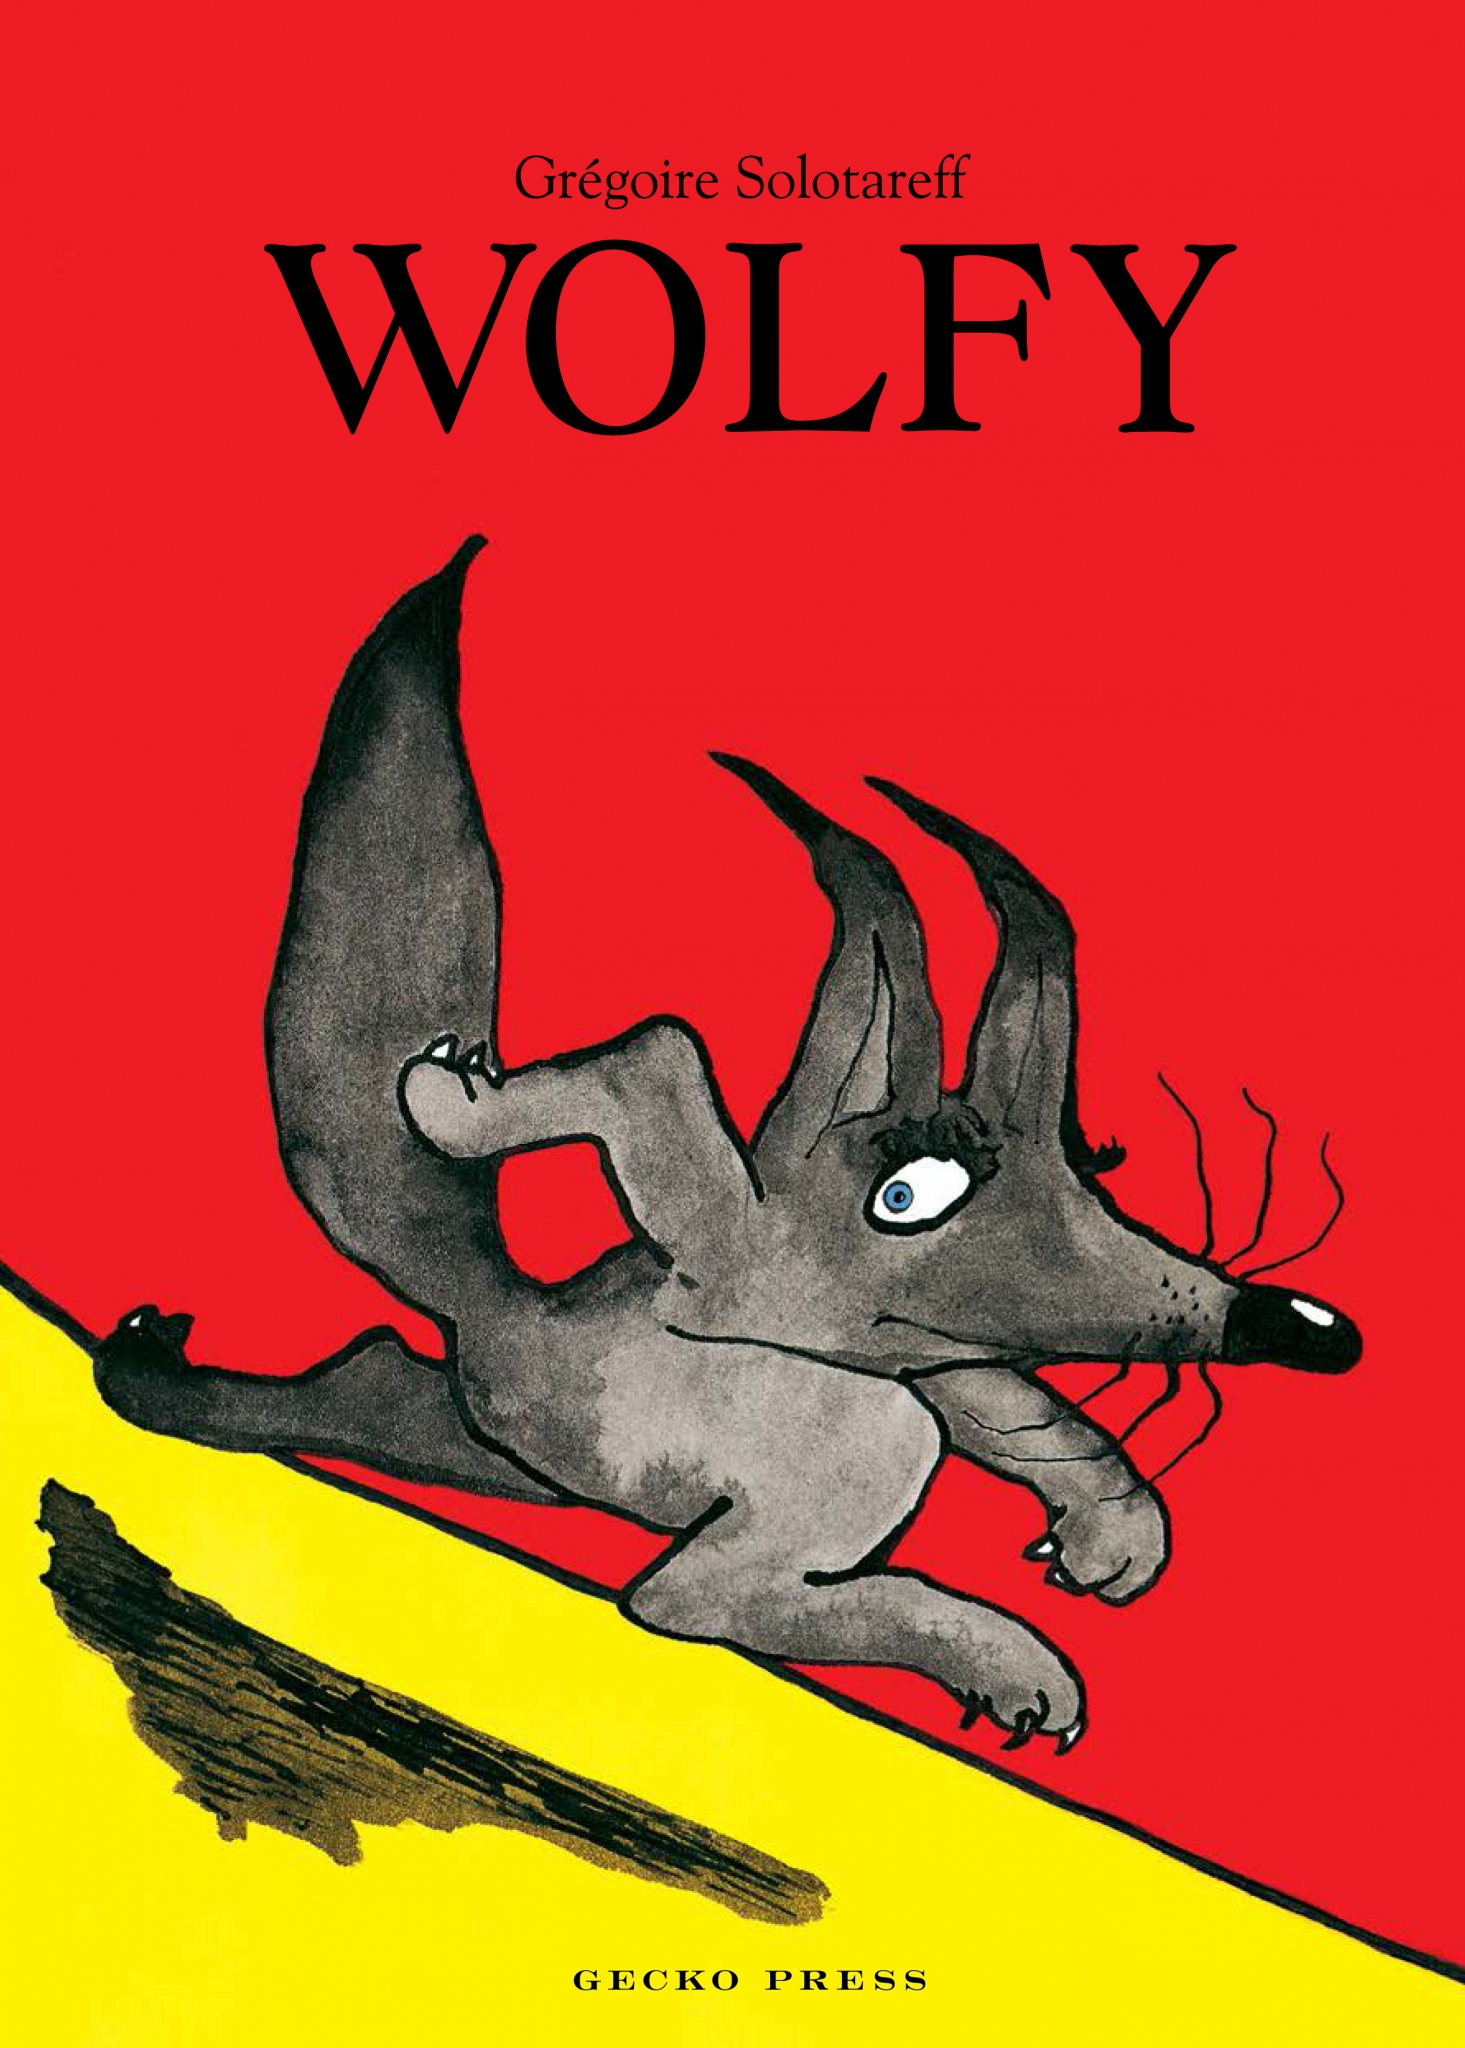 Wolfy Gregoire Solotareff bestselling picture book